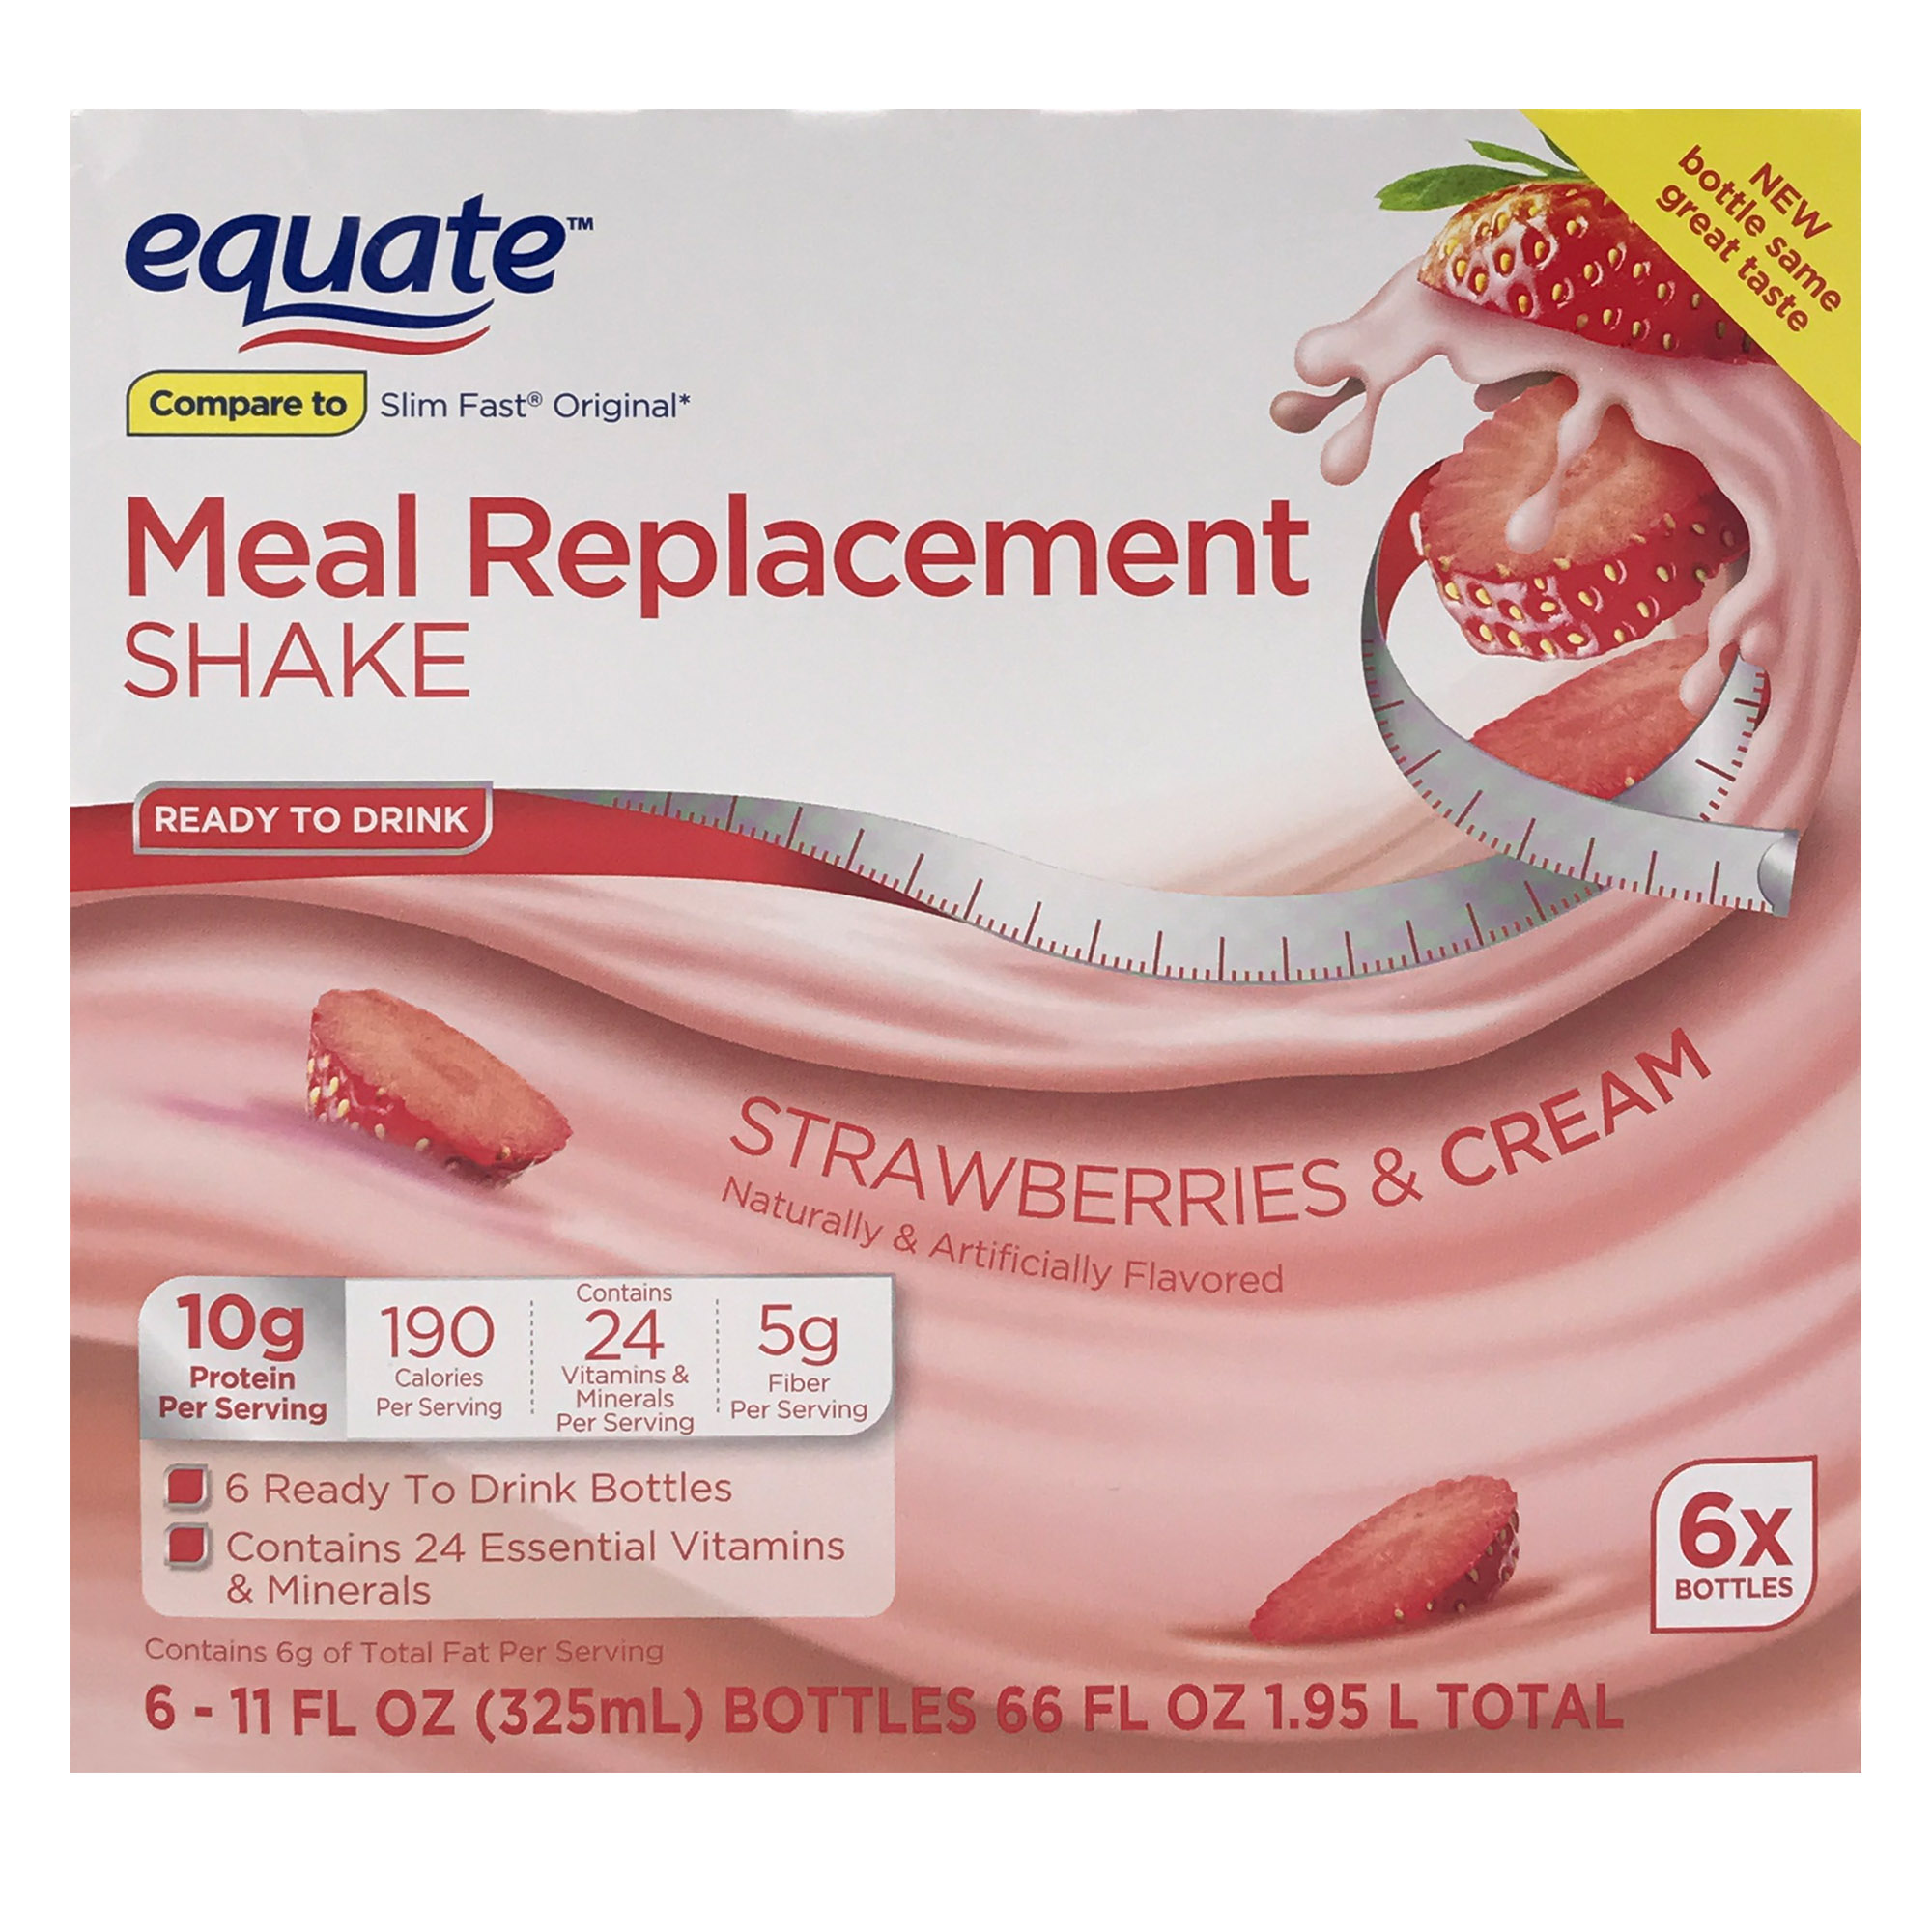 Equate Meal Replacement Shake, Strawberries & Cream, 66 fl oz